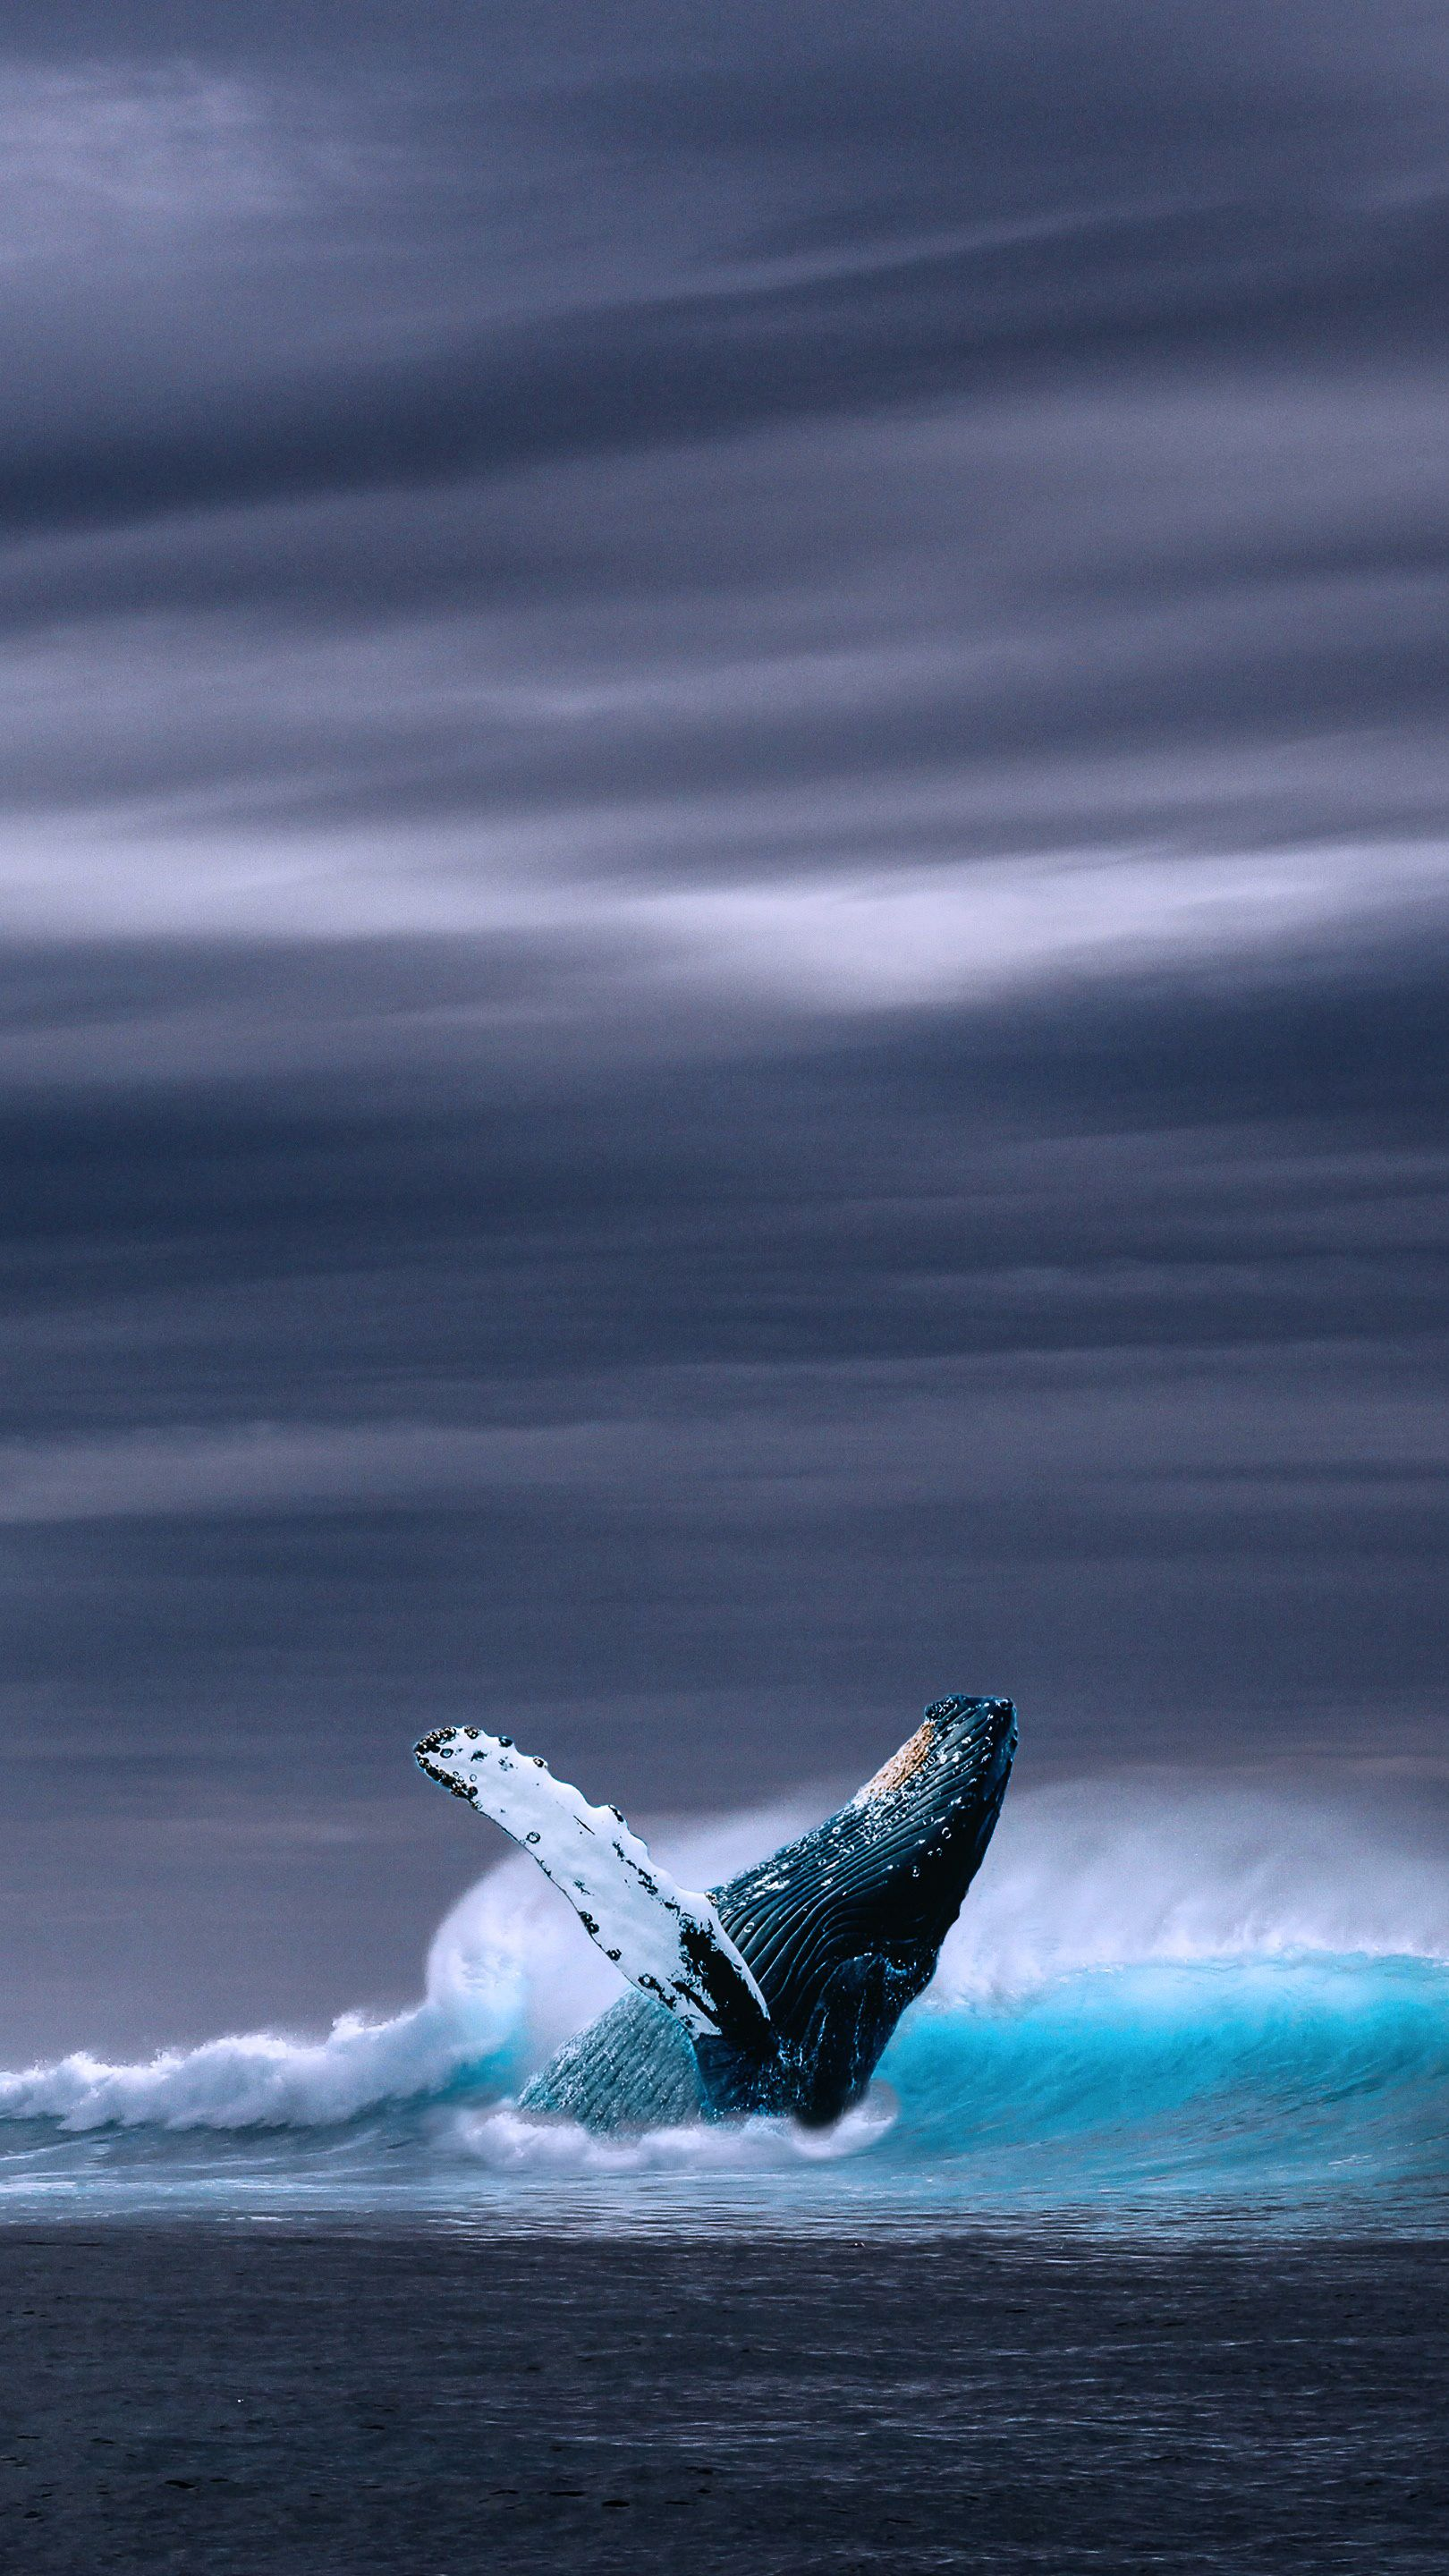 Blue Whale Mobile Hd Wallpaper In 2020 Whale Pictures Beautiful Sea Creatures Ocean Animals